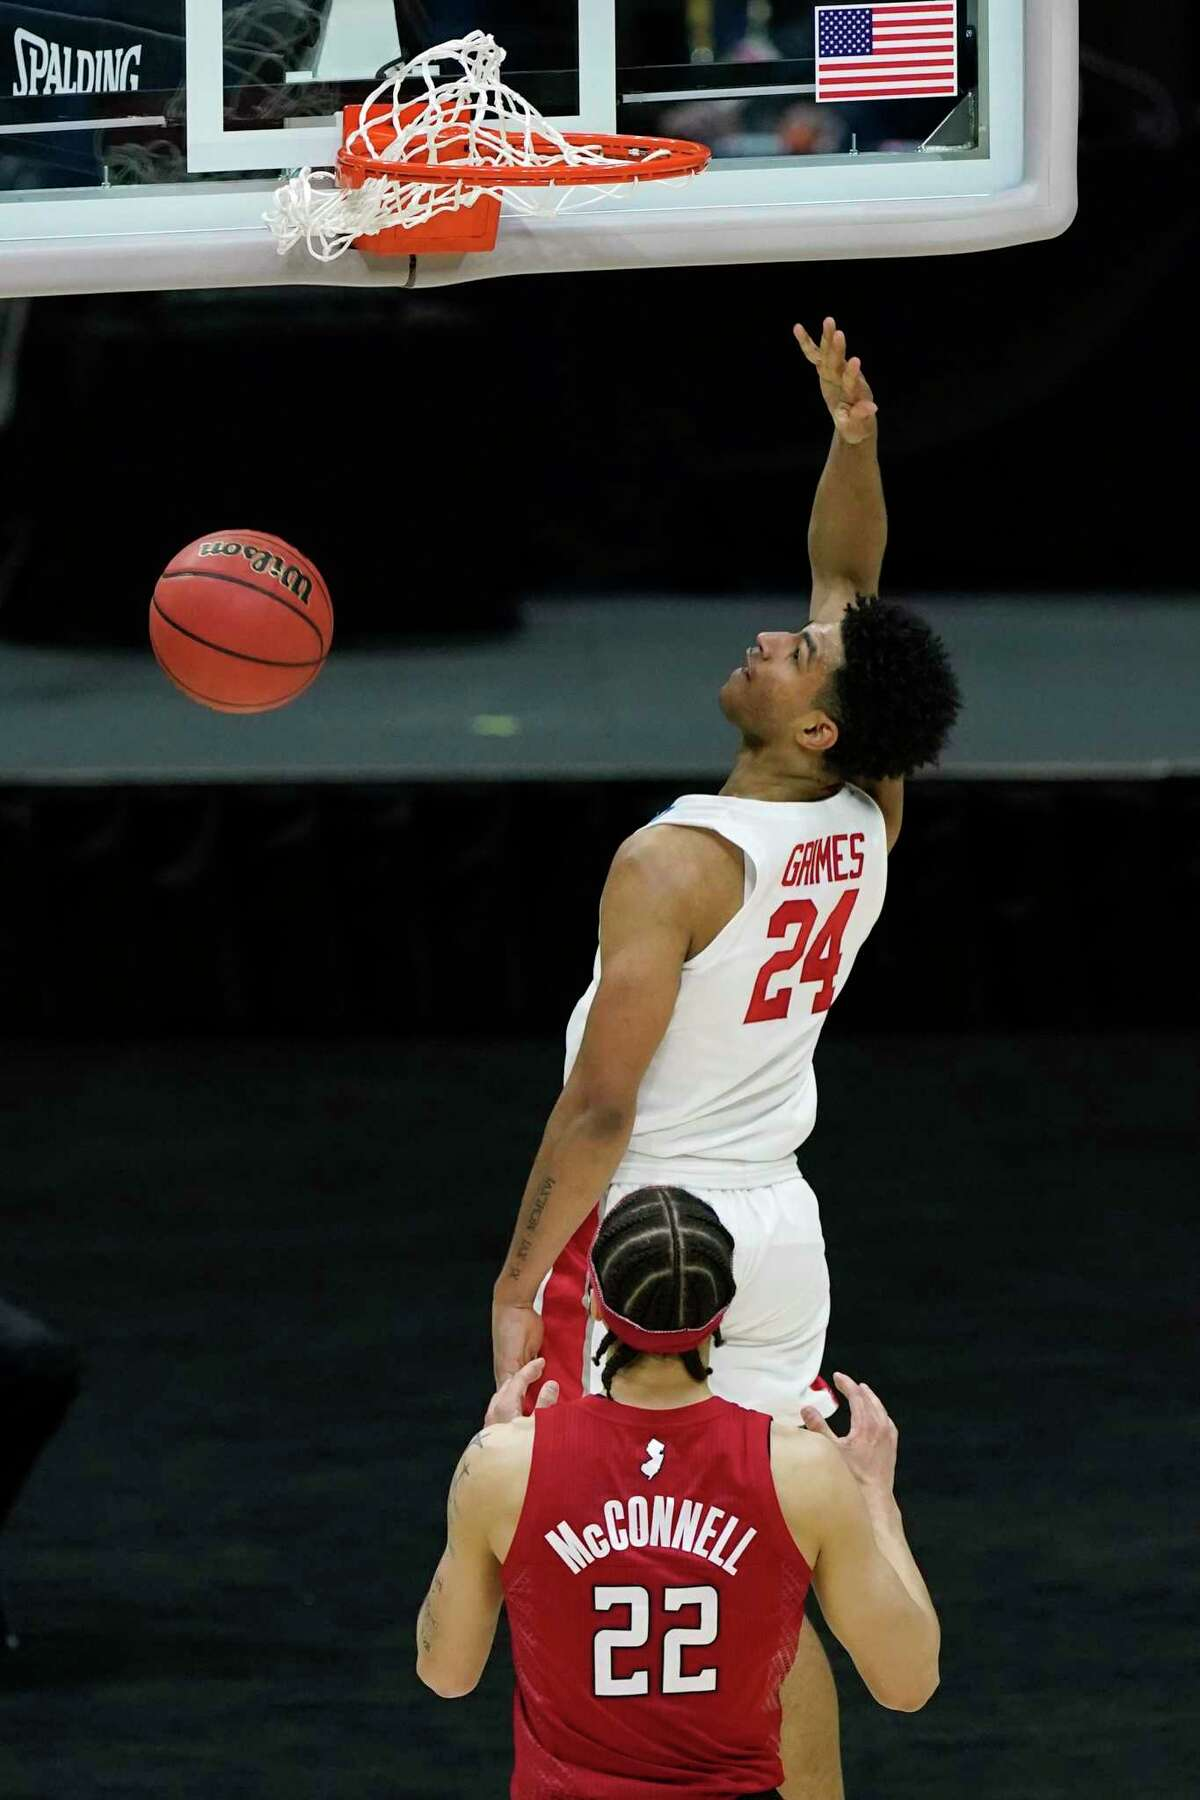 Houston's Quentin Grimes (24) scores ahead of Rutgers' Caleb McConnell (22) during the second half of a college basketball game in the second round of the NCAA tournament at Lucas Oil Stadium in Indianapolis Sunday, March 21, 2021. Grimes scored 22 points as Houston won 63-60. (AP Photo/Mark Humphrey)